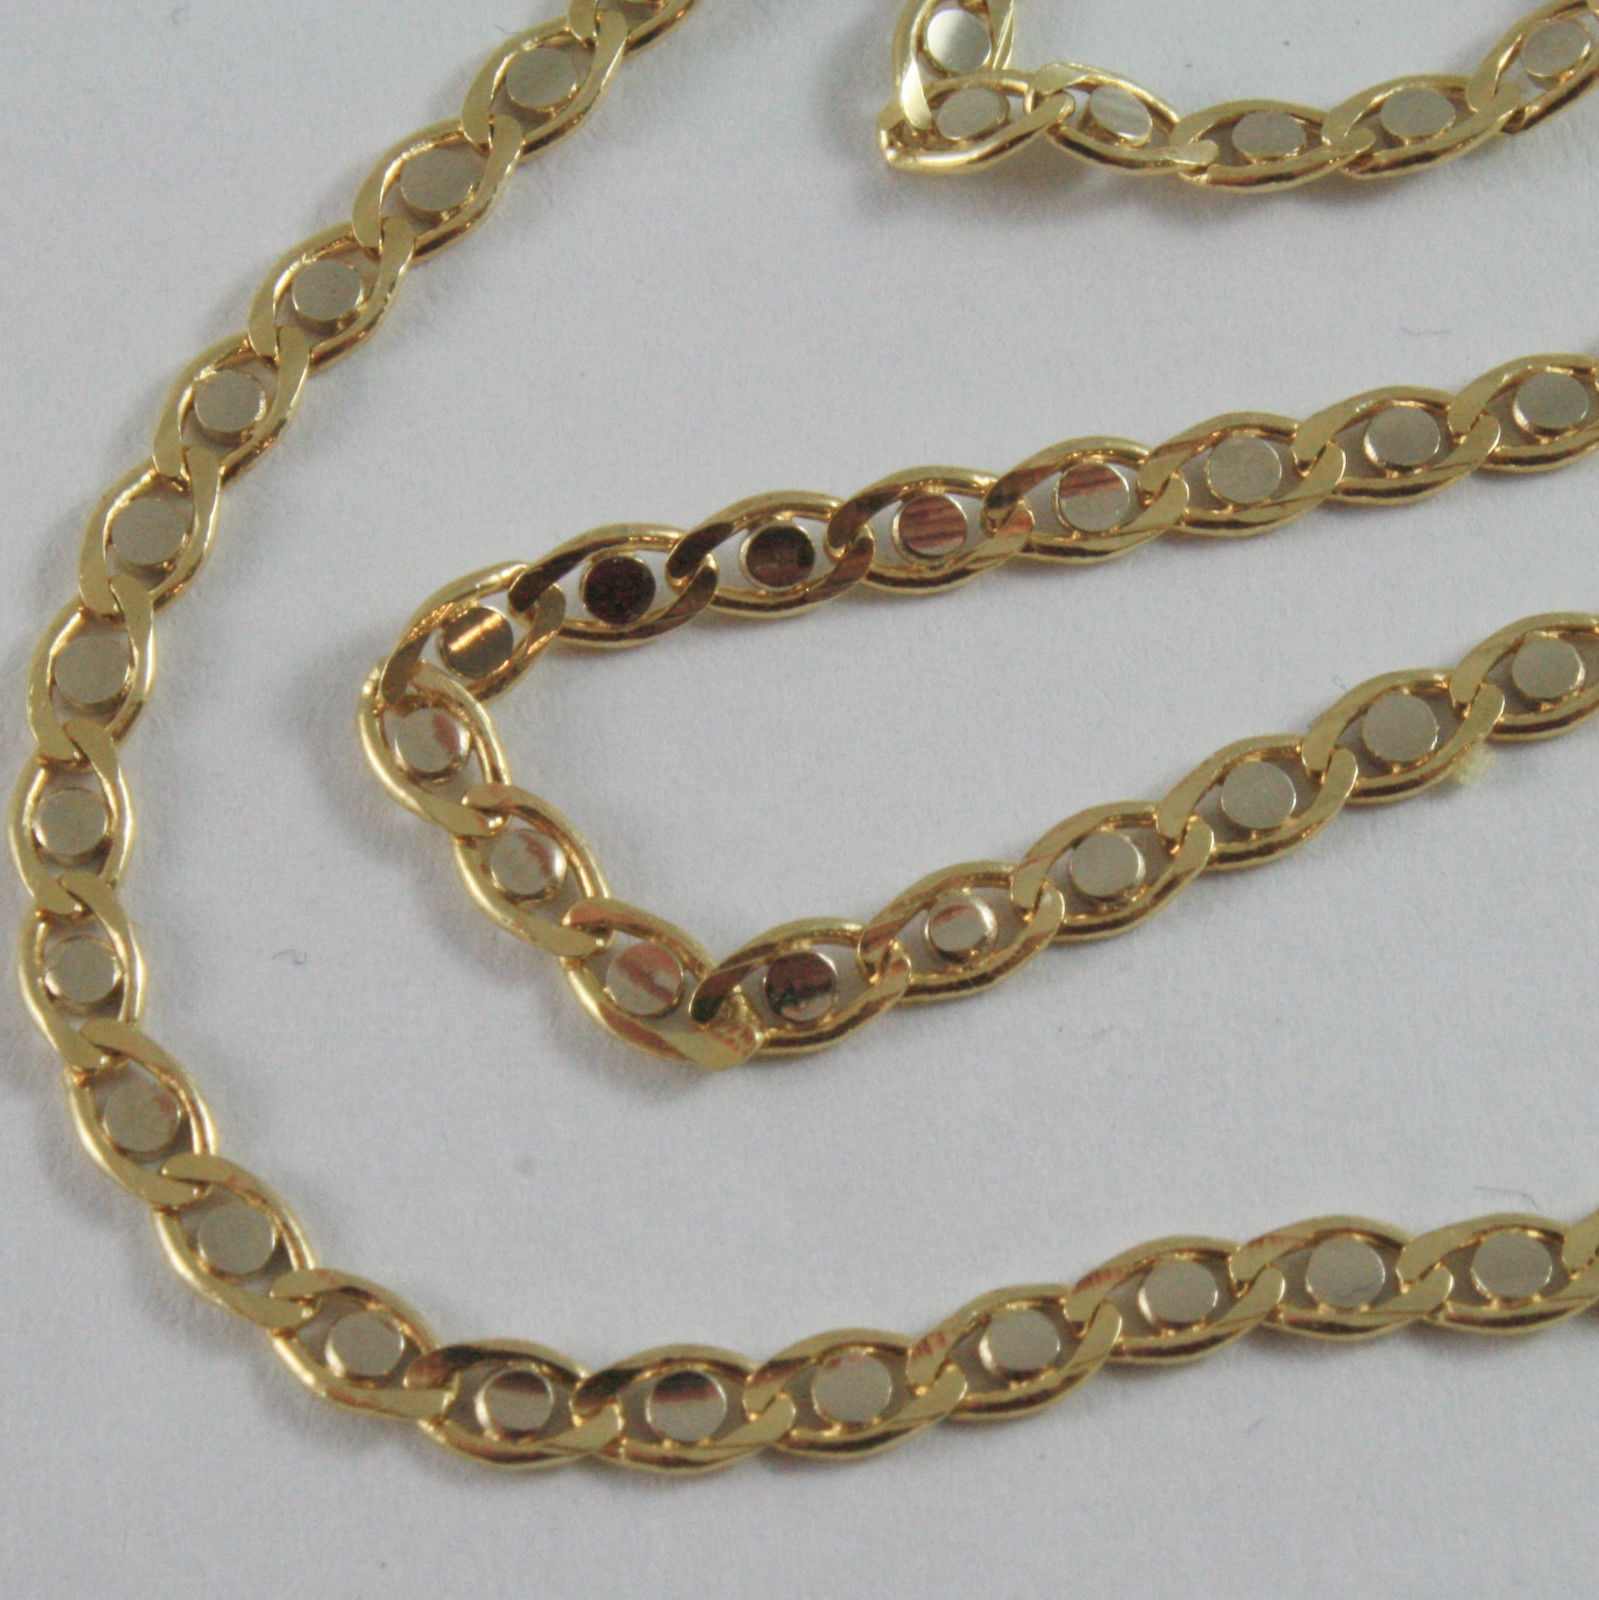 18K YELLOW AND WHITE GOLD CHAIN, EYE FLAT OVAL LINK 3mm NECKLACE MADE IN ITALY